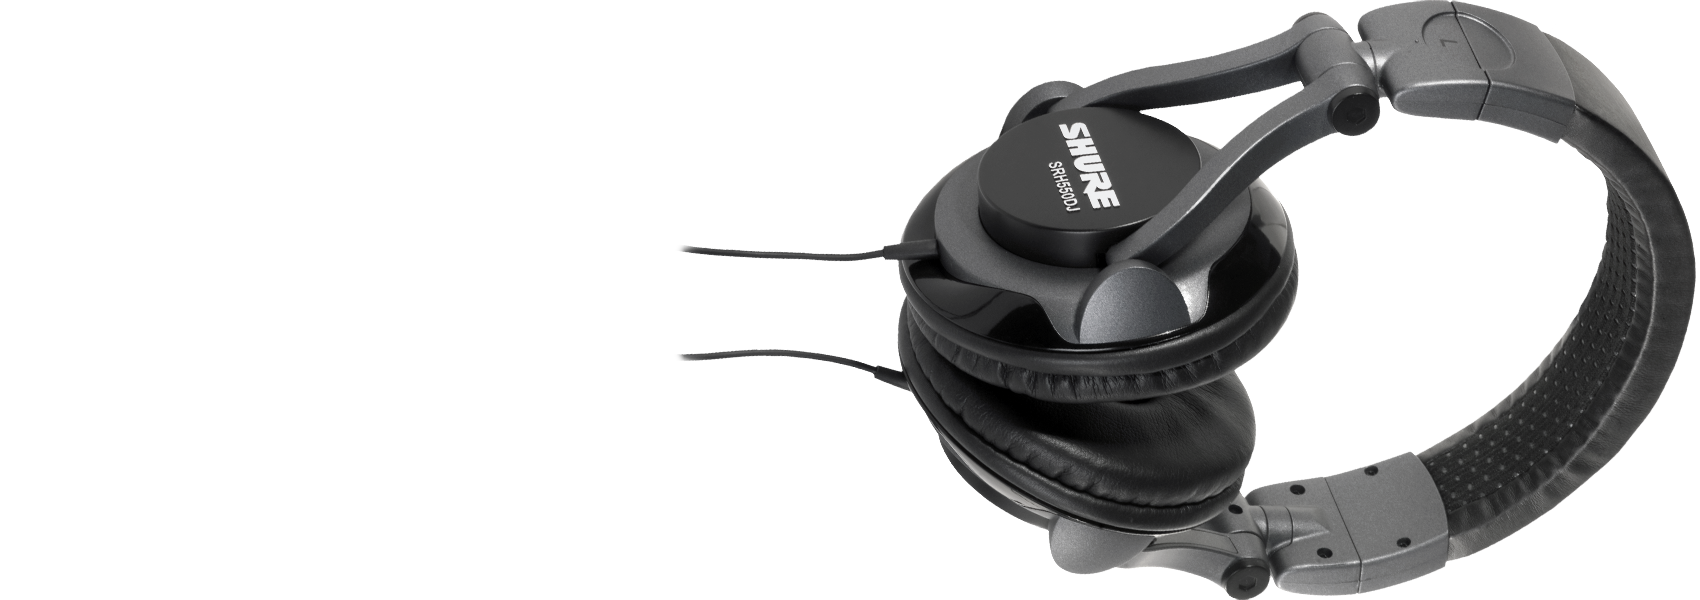 Illustration Shure SRH550DJ Professional Quality DJ Headphones